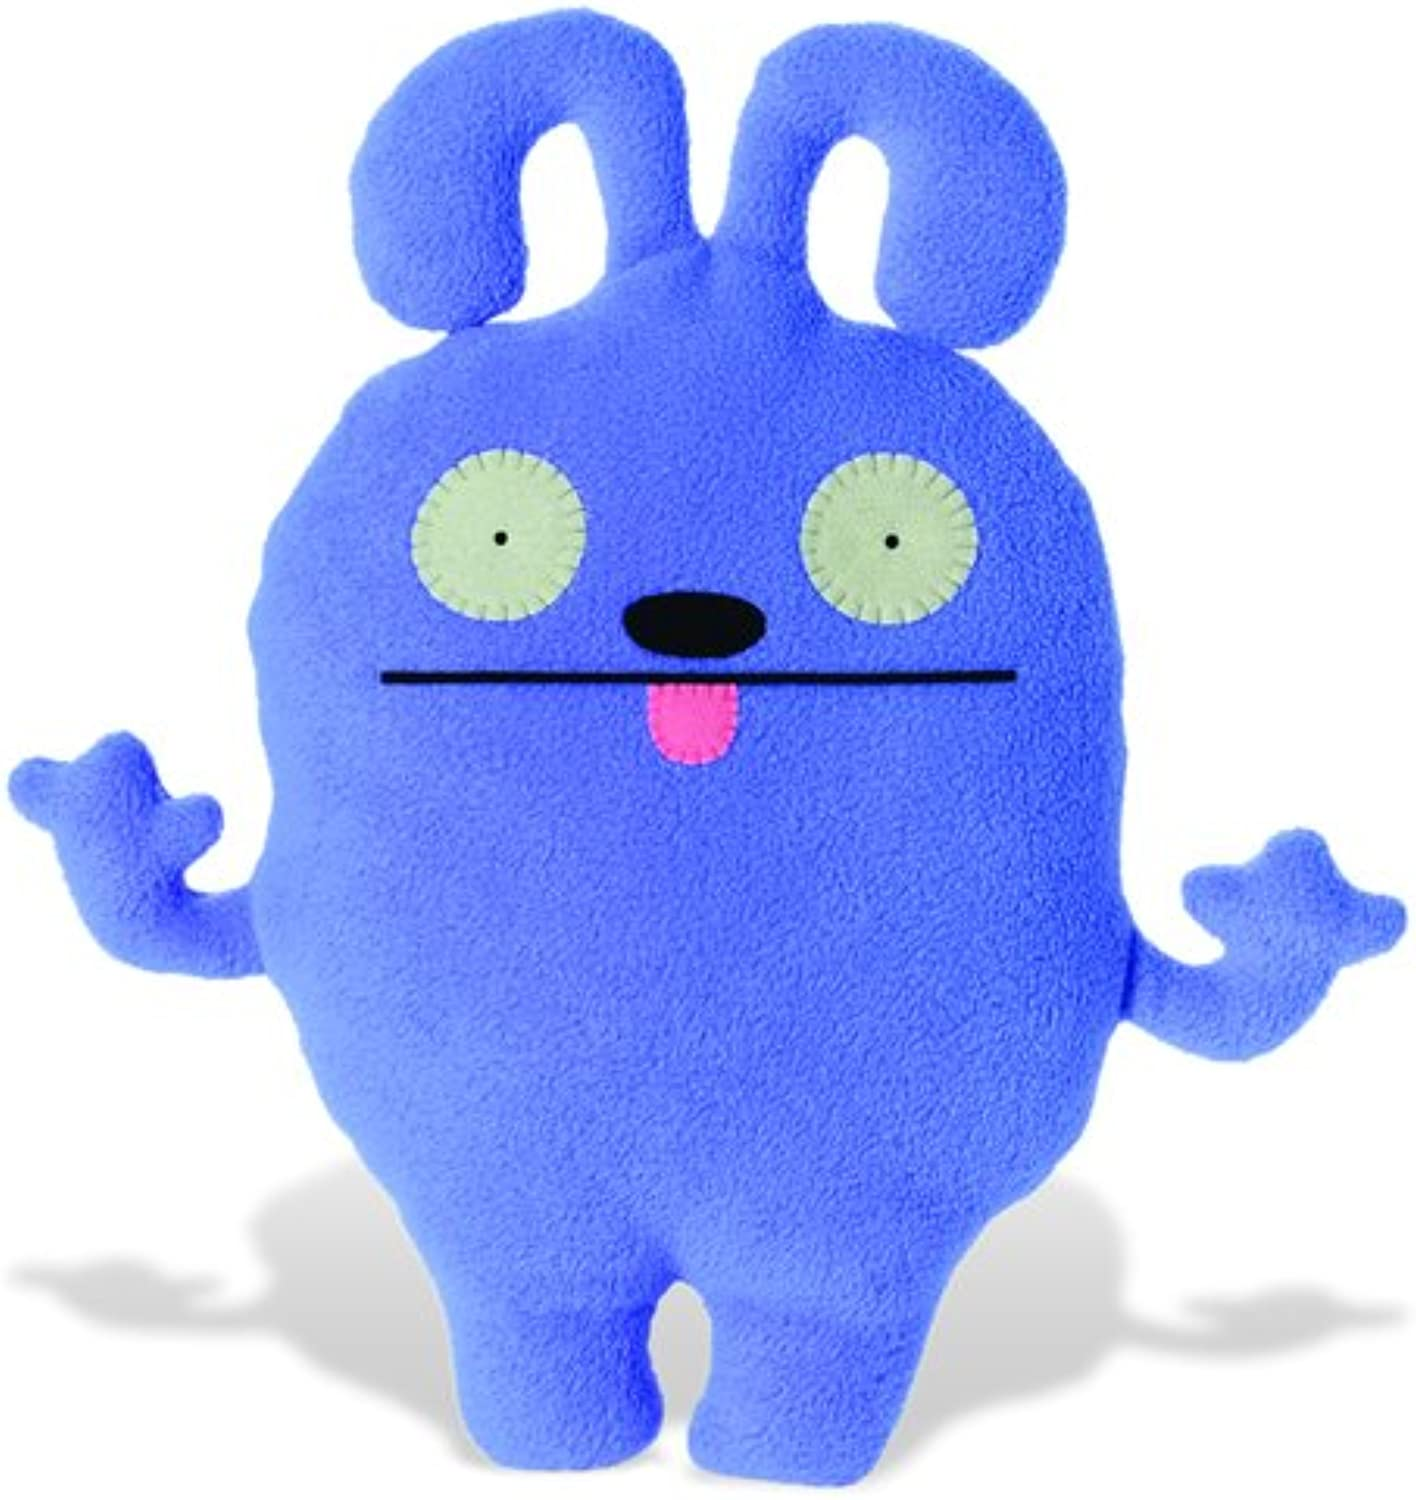 Uglydoll 7inch Tub Nubury Little Ugly Soft Toy Doll